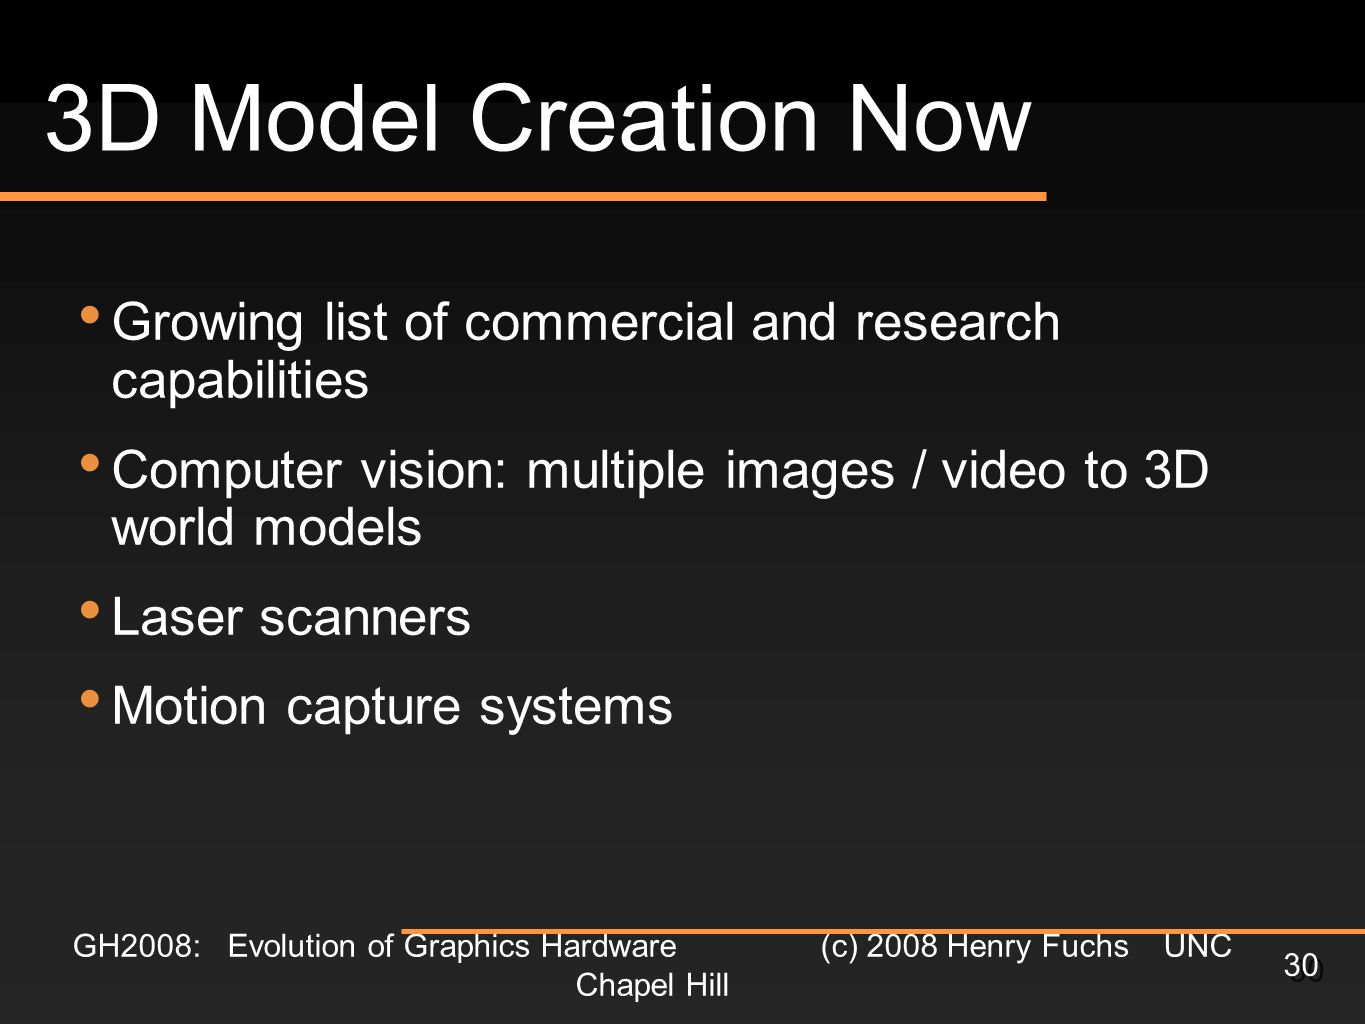 GH2008: Evolution of Graphics Hardware (c) 2008 Henry Fuchs UNC Chapel Hill 30 3D Model Creation Now Growing list of commercial and research capabilities Computer vision: multiple images / video to 3D world models Laser scanners Motion capture systems